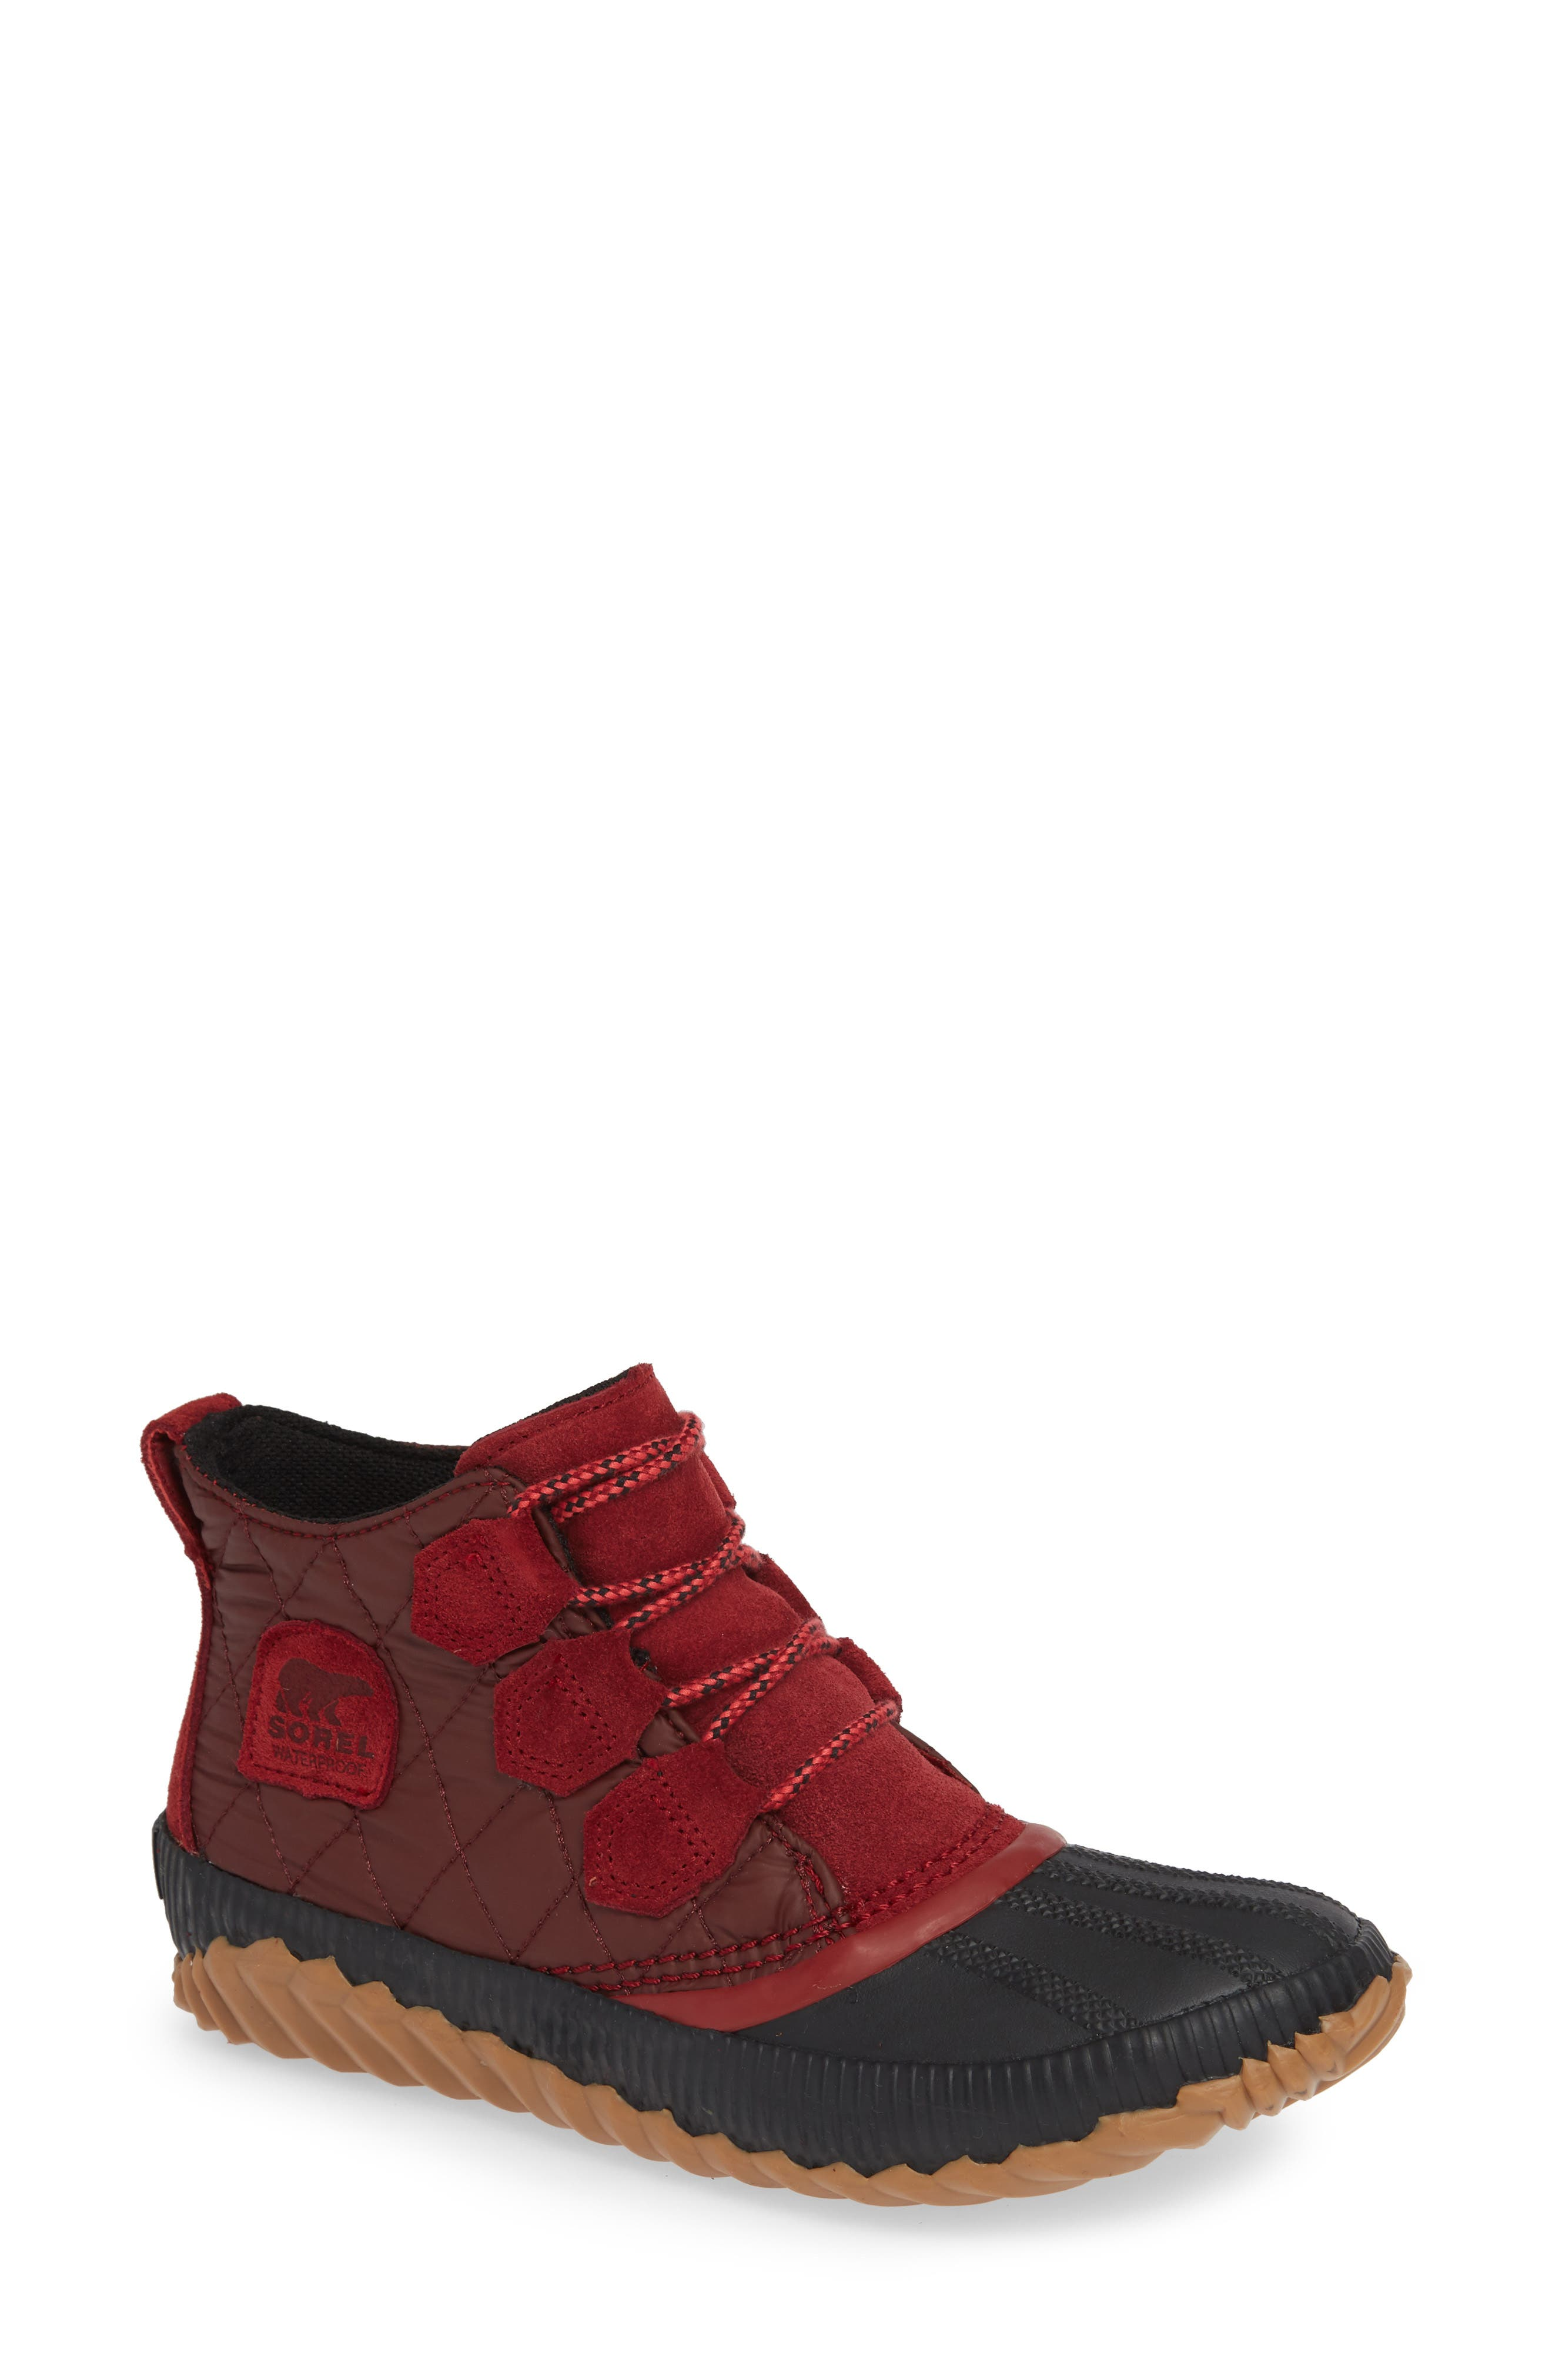 Out 'N' About Plus Camp Waterproof Bootie,                             Main thumbnail 1, color,                             CAMP/ RED ELEMENT